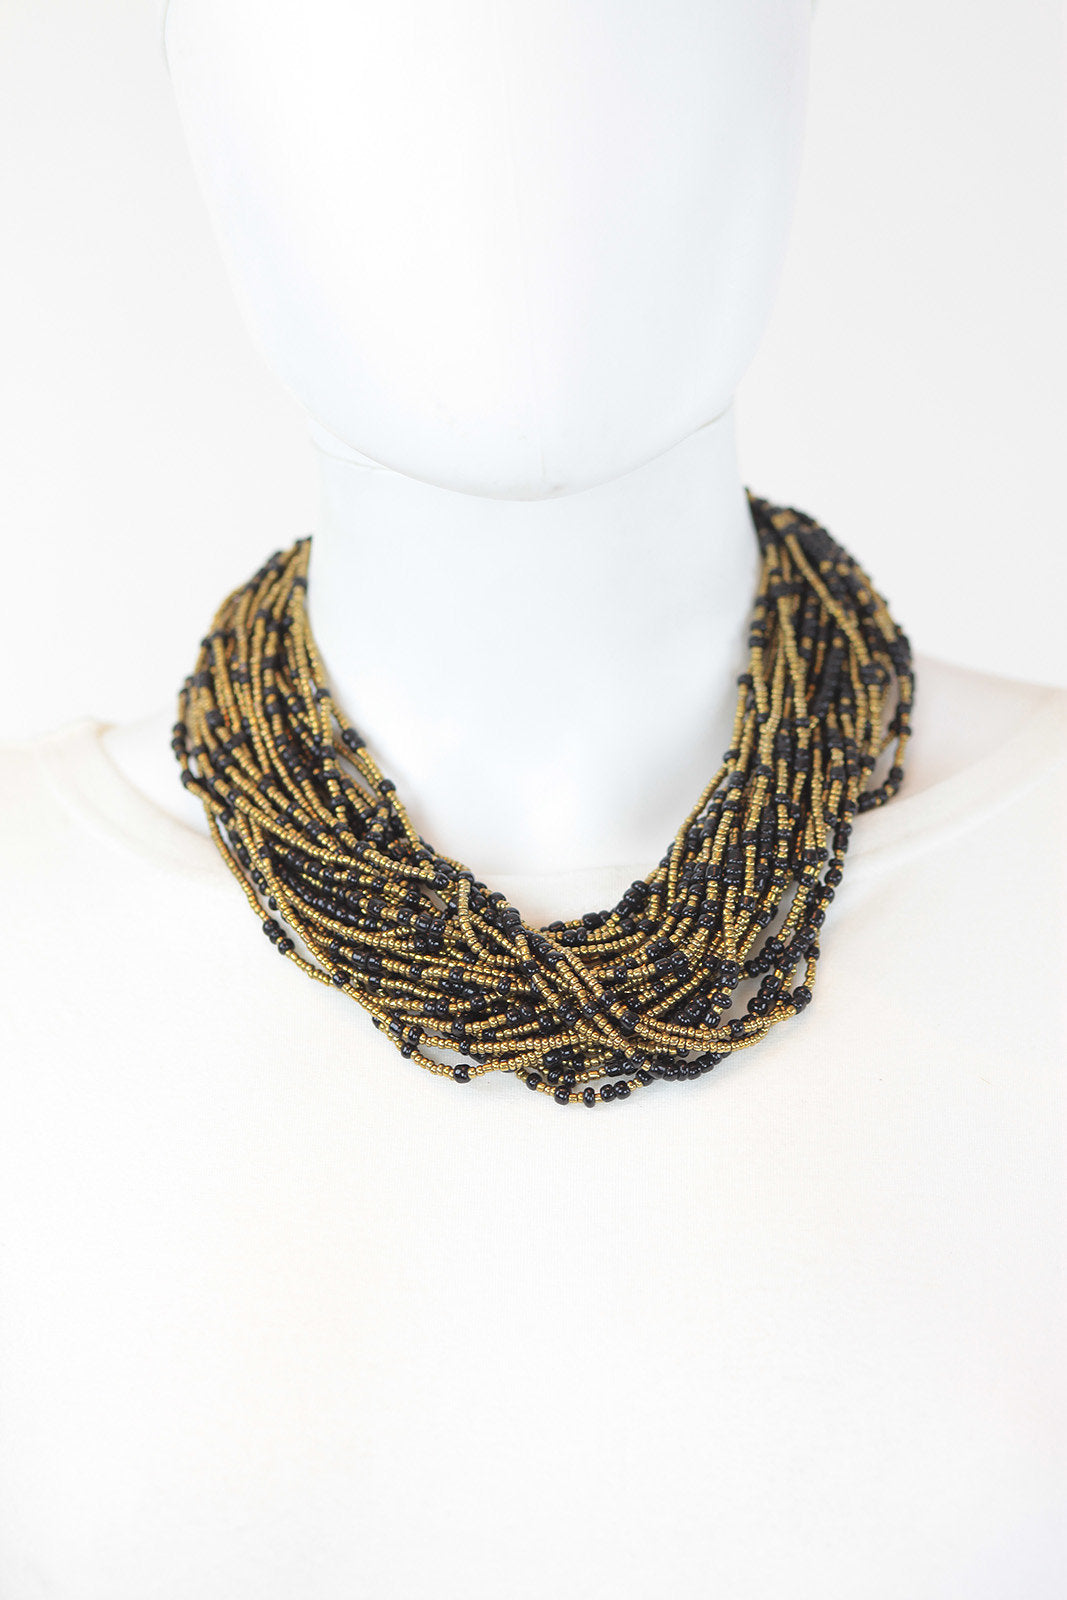 African Maasai Beaded Necklace-Gold/Black - Africas Closet